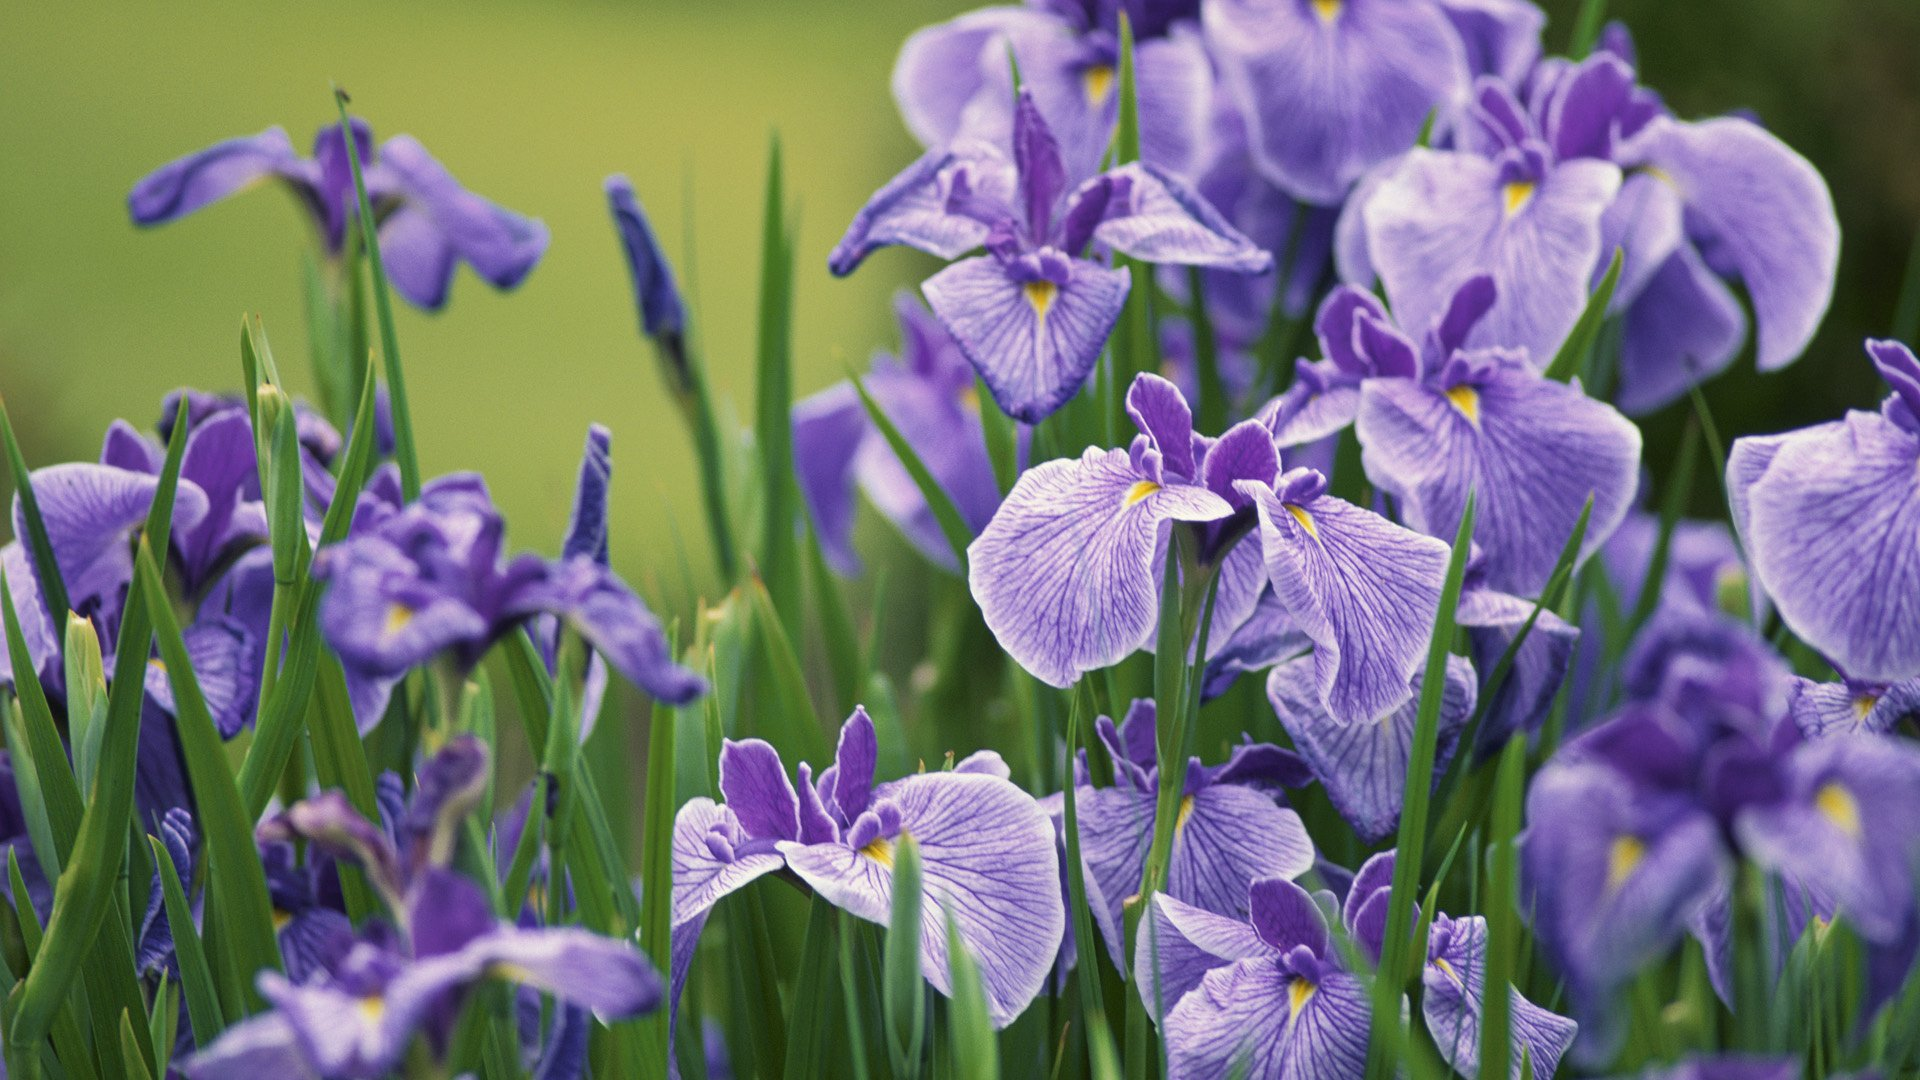 Iris Full HD Wallpaper and Background